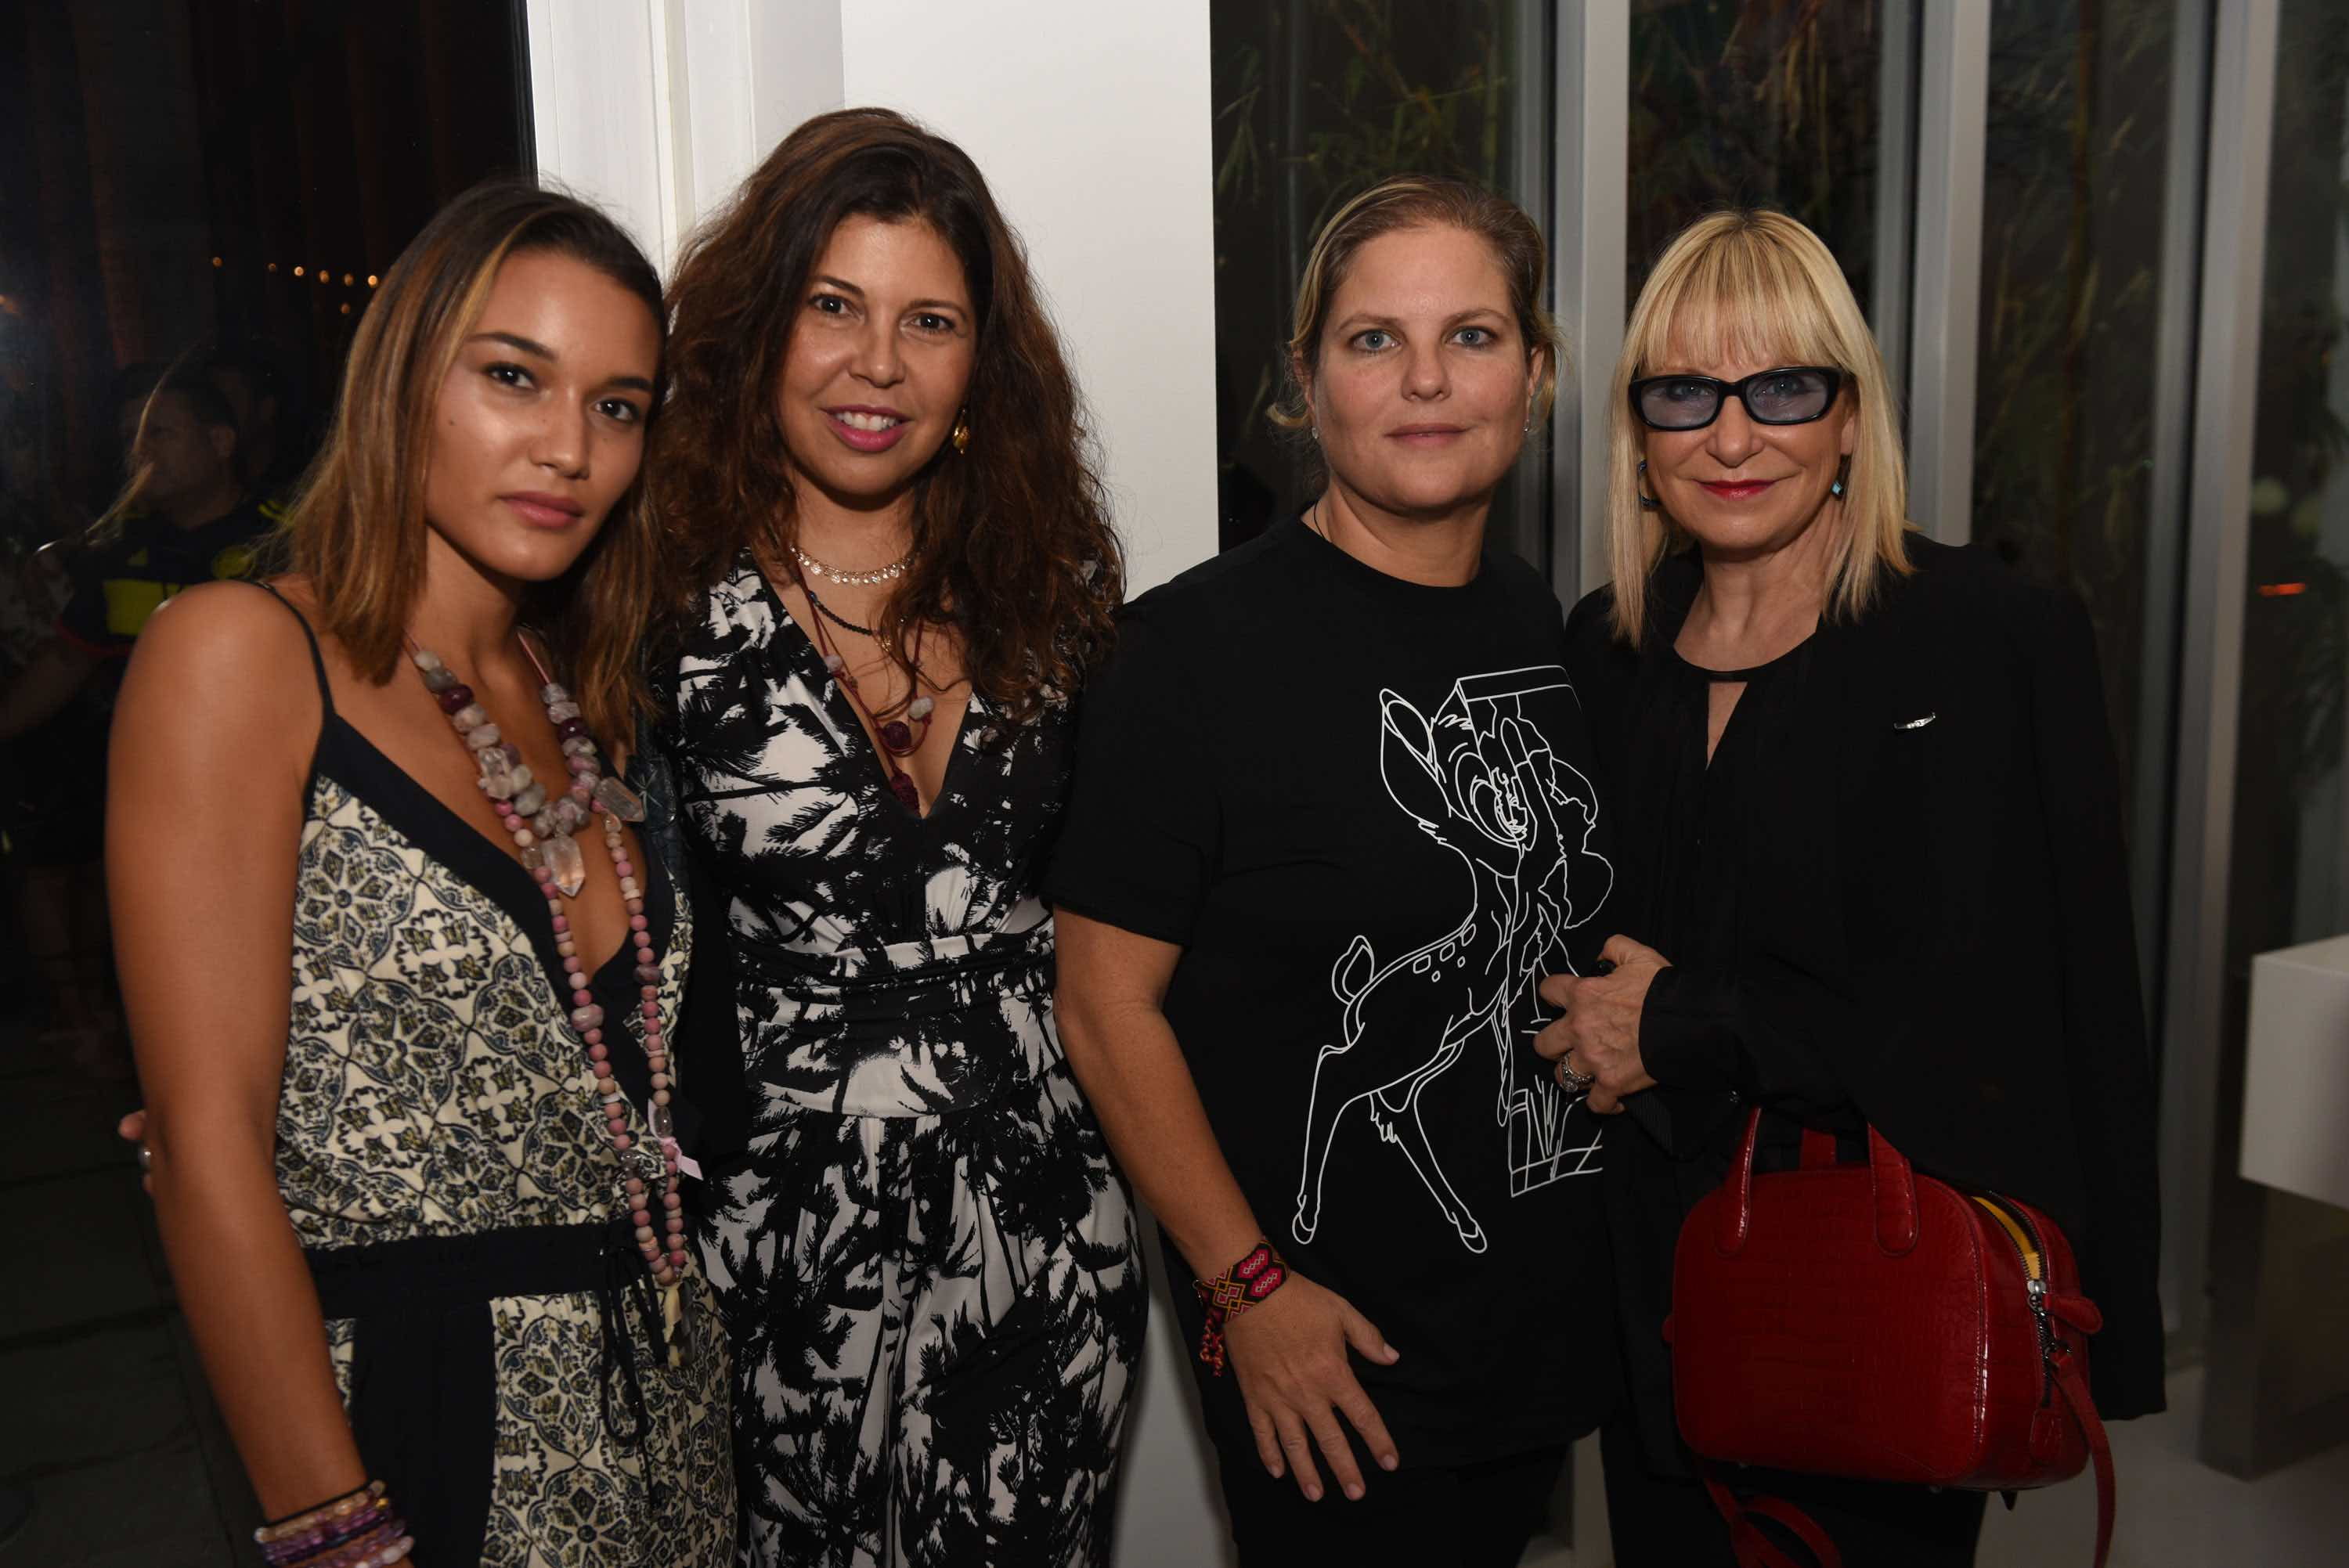 Guests, Karla Dascal and Elysze Held